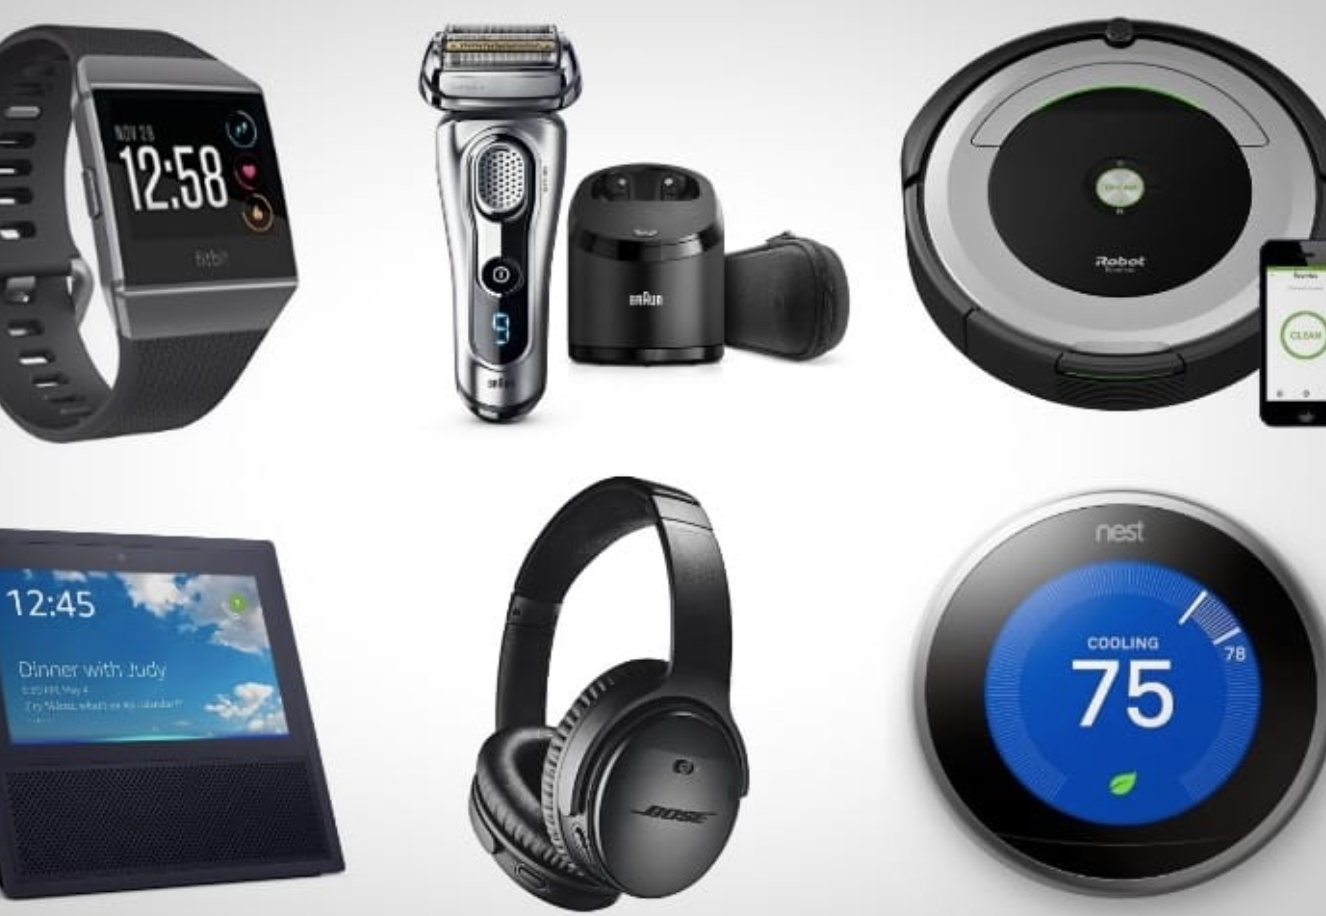 Top 5 Father's Day Gifts 2021 – Tech Gadgets